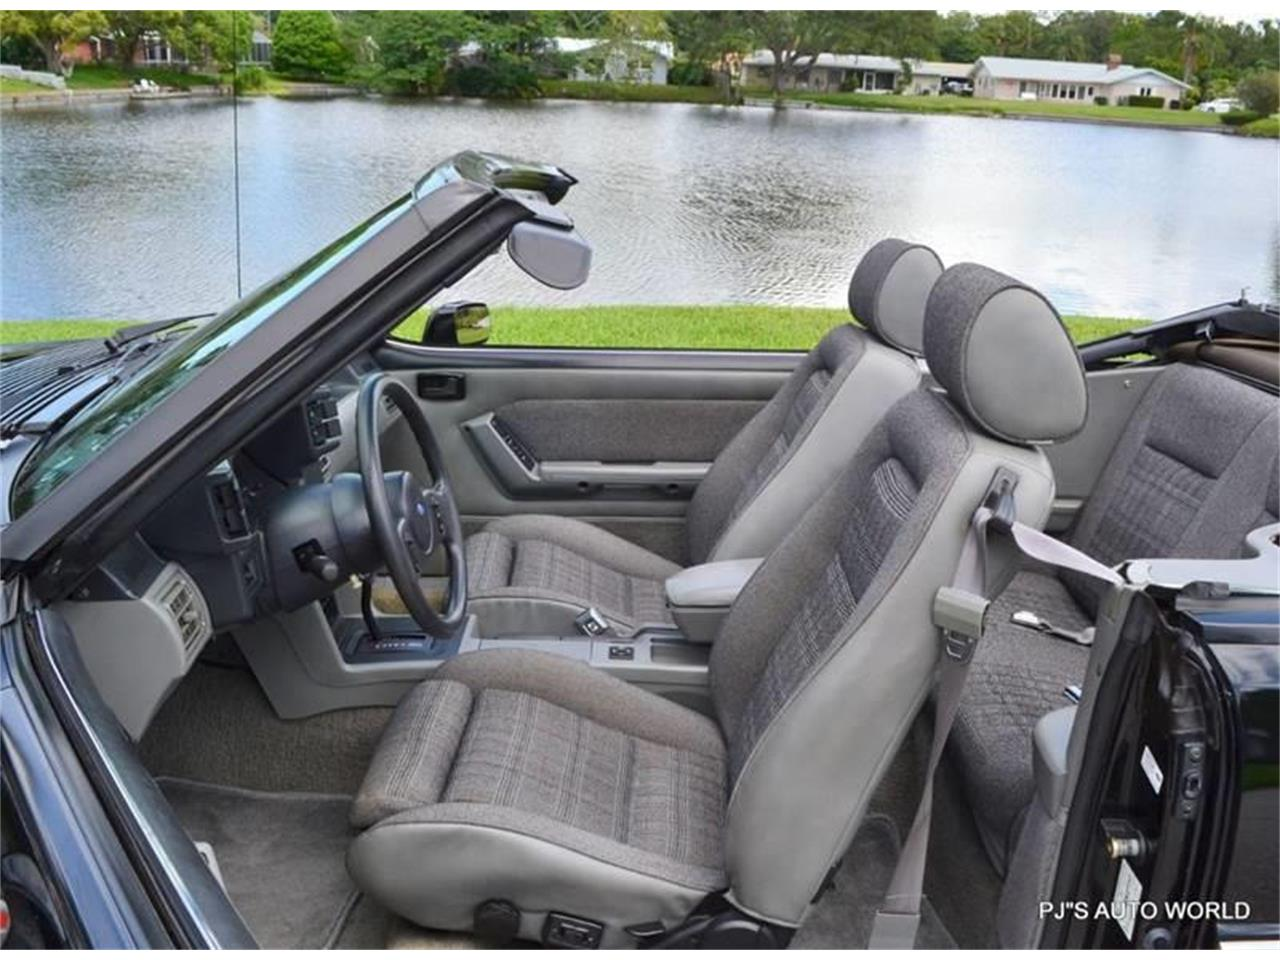 Large Picture of 1989 Ford Mustang located in Clearwater Florida - $17,900.00 - NGI8